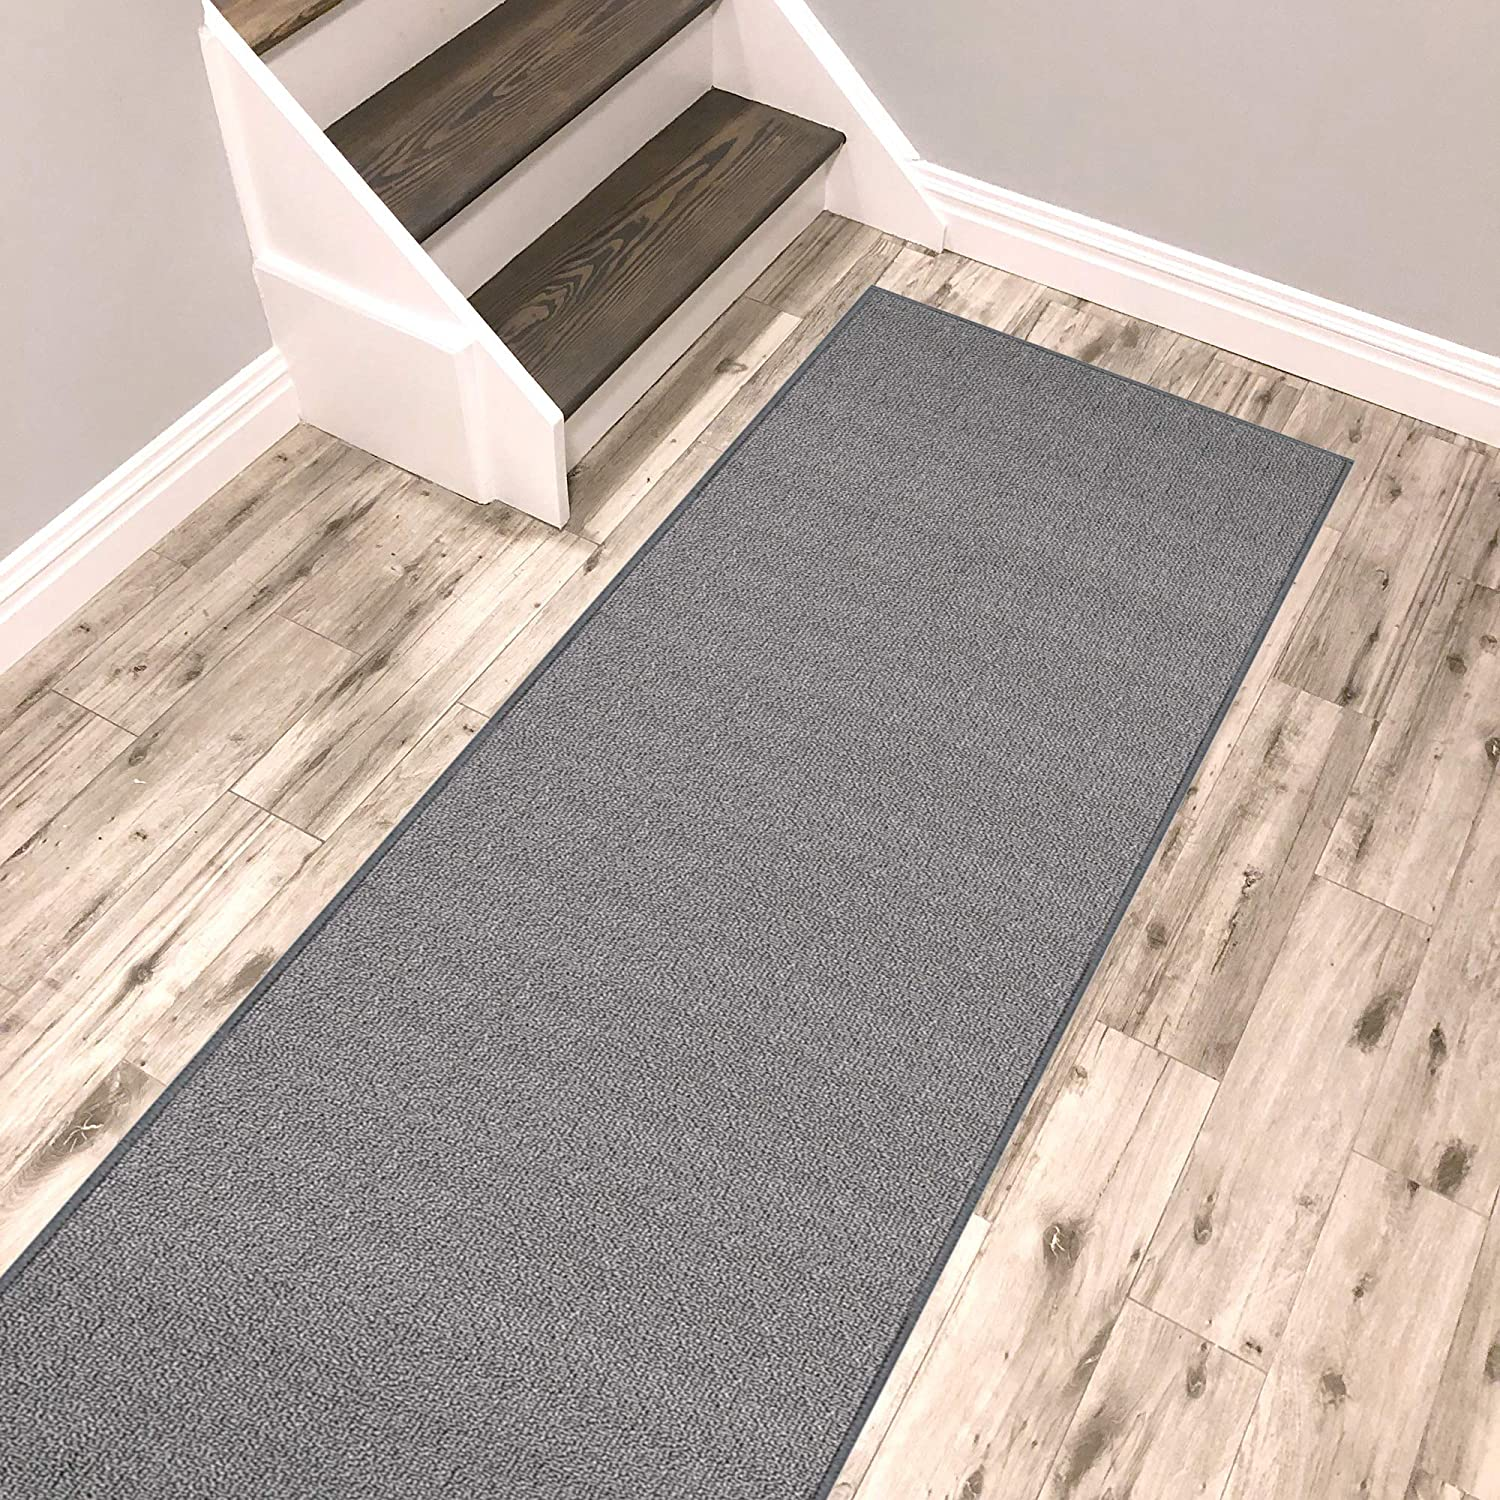 Kapaqua Solid Grey Ranking integrated 1st place Runner Rug Non Friendl Pet Super sale Rubber Backed Slip